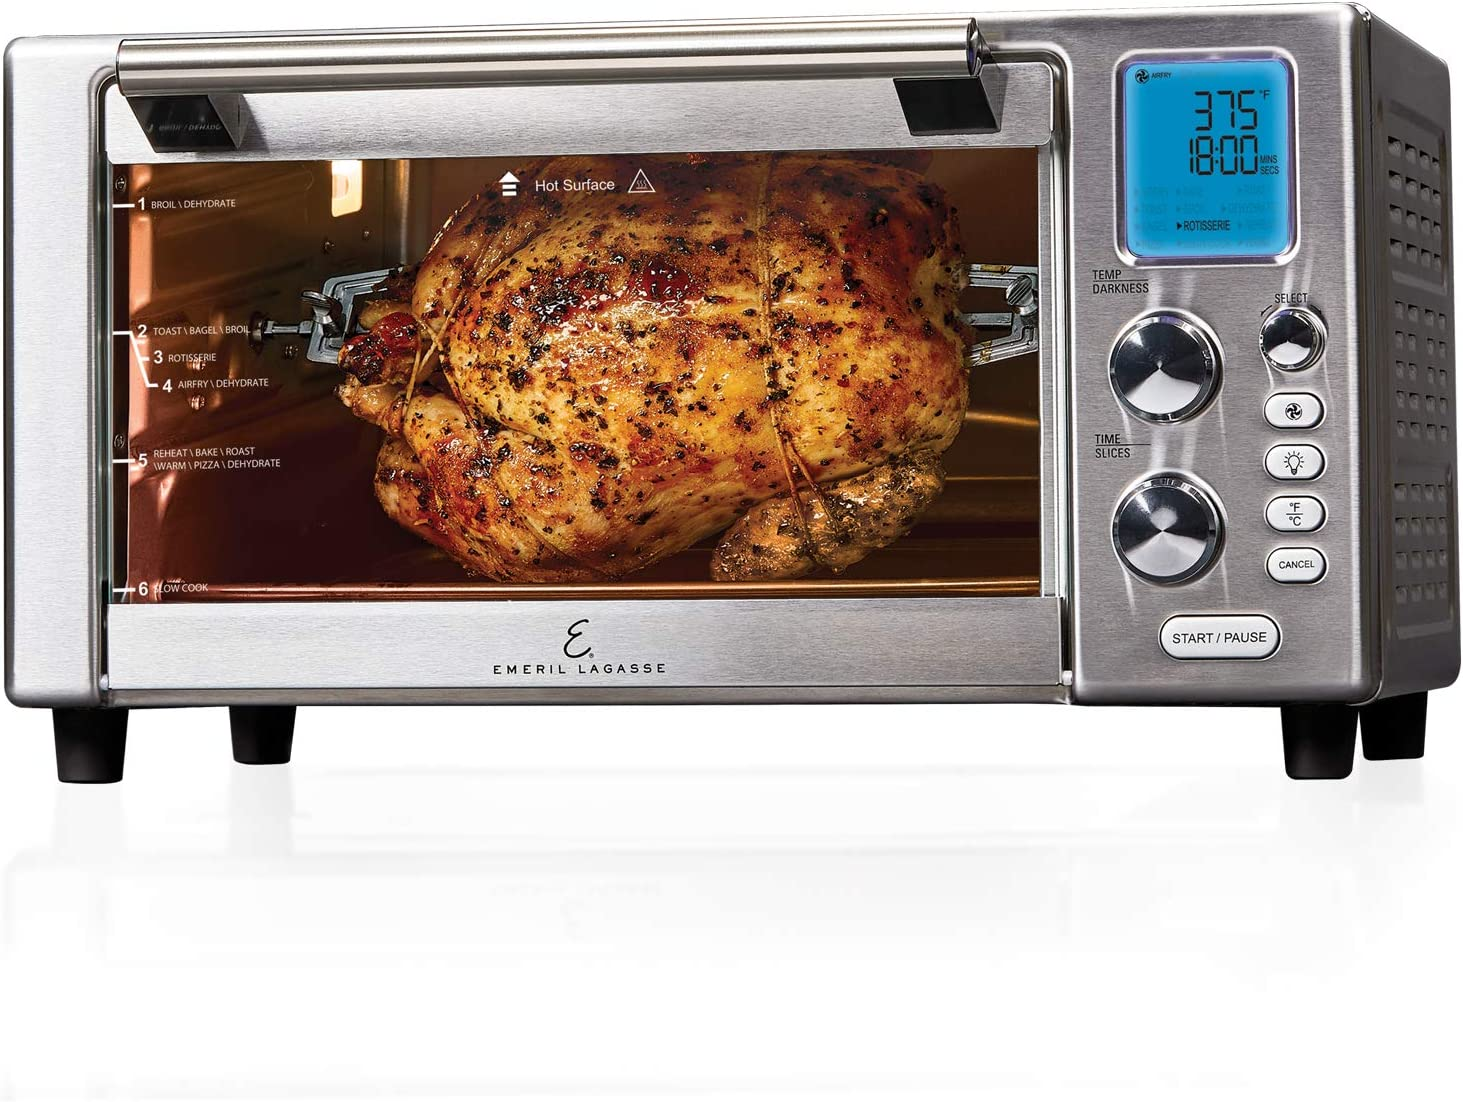 "Emeril Everyday 360 Deluxe Air Fryer Oven, 15.1"" x 19.3"" x 10.4"" with Accessory Pack, Silver"